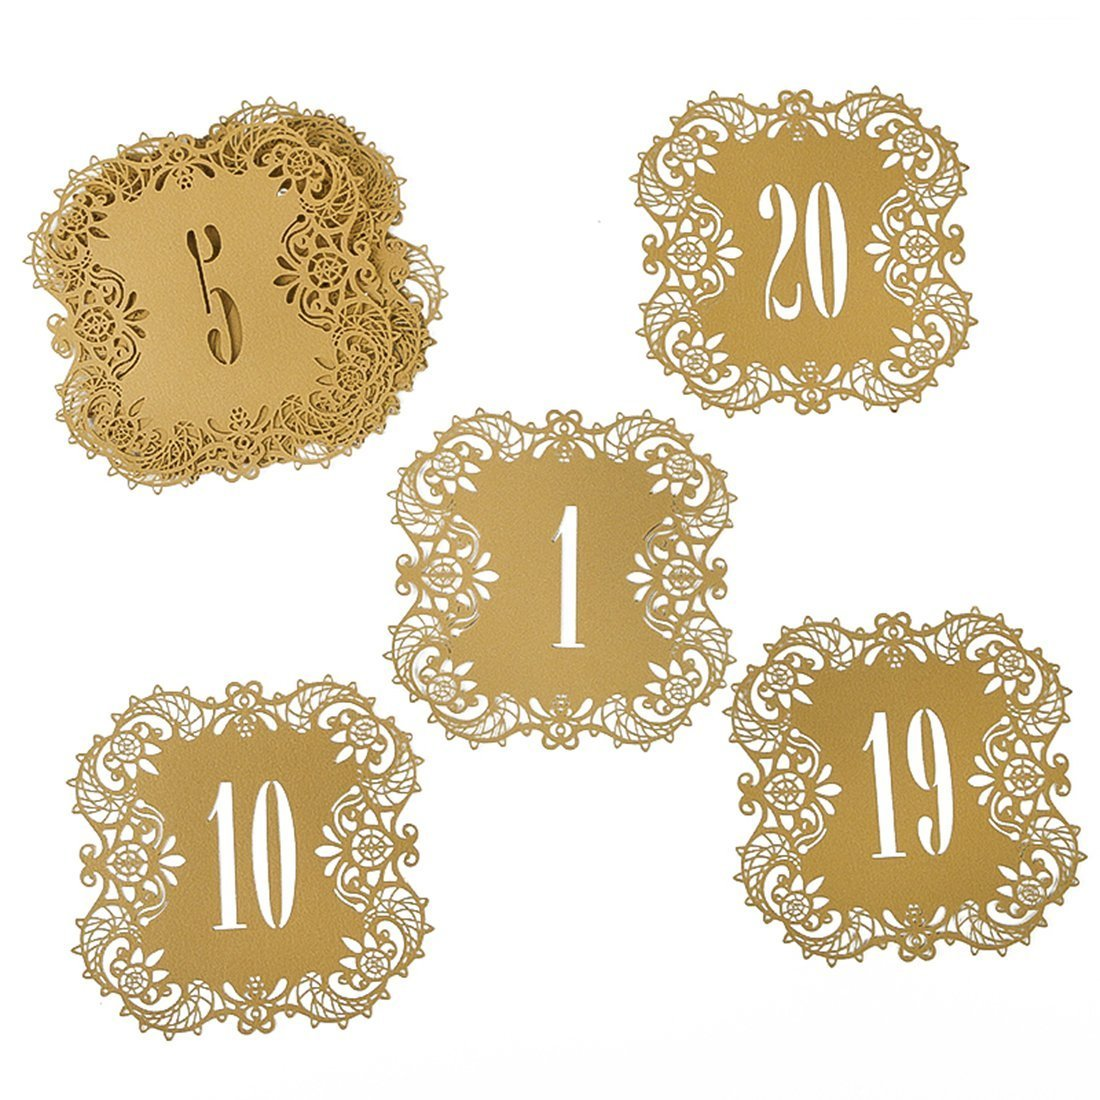 YUFENG Wedding Table Card Numbers Lace Table Cards for Wedding Reception Party Favors (beige gold 20pcs) YUFENG CRAFTS MANUFACTURE CO. LTD